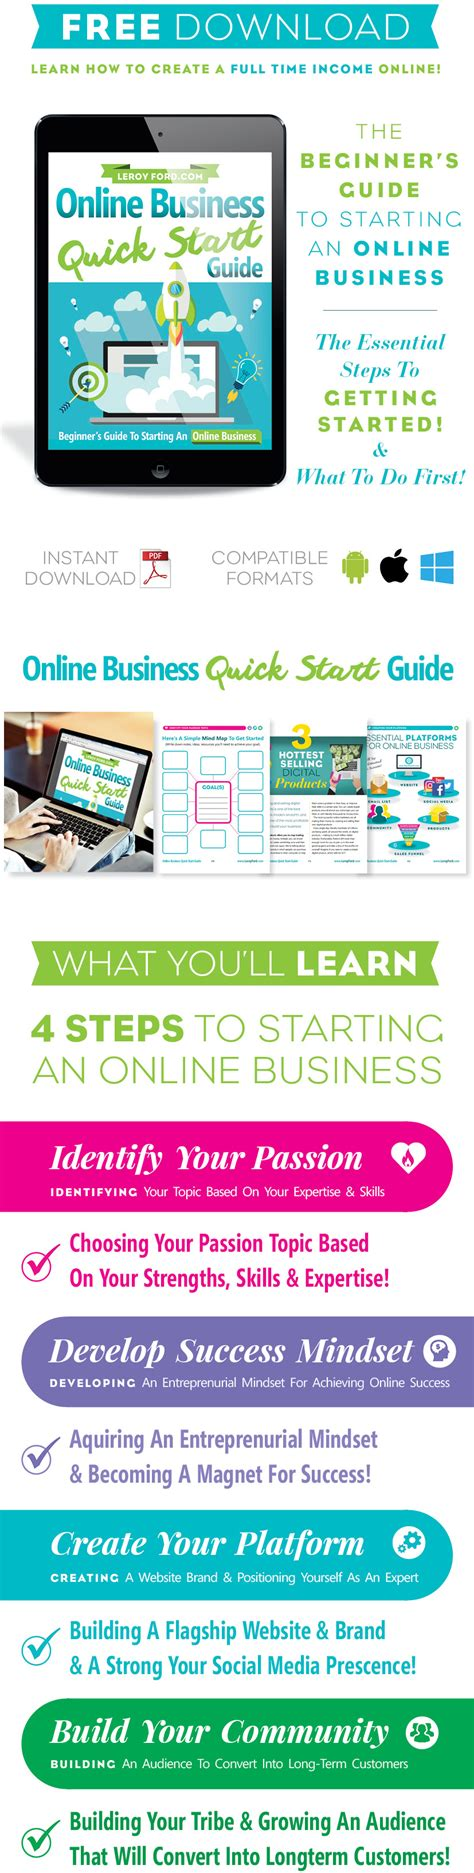 Free Download  Online Business Quick Start Guide